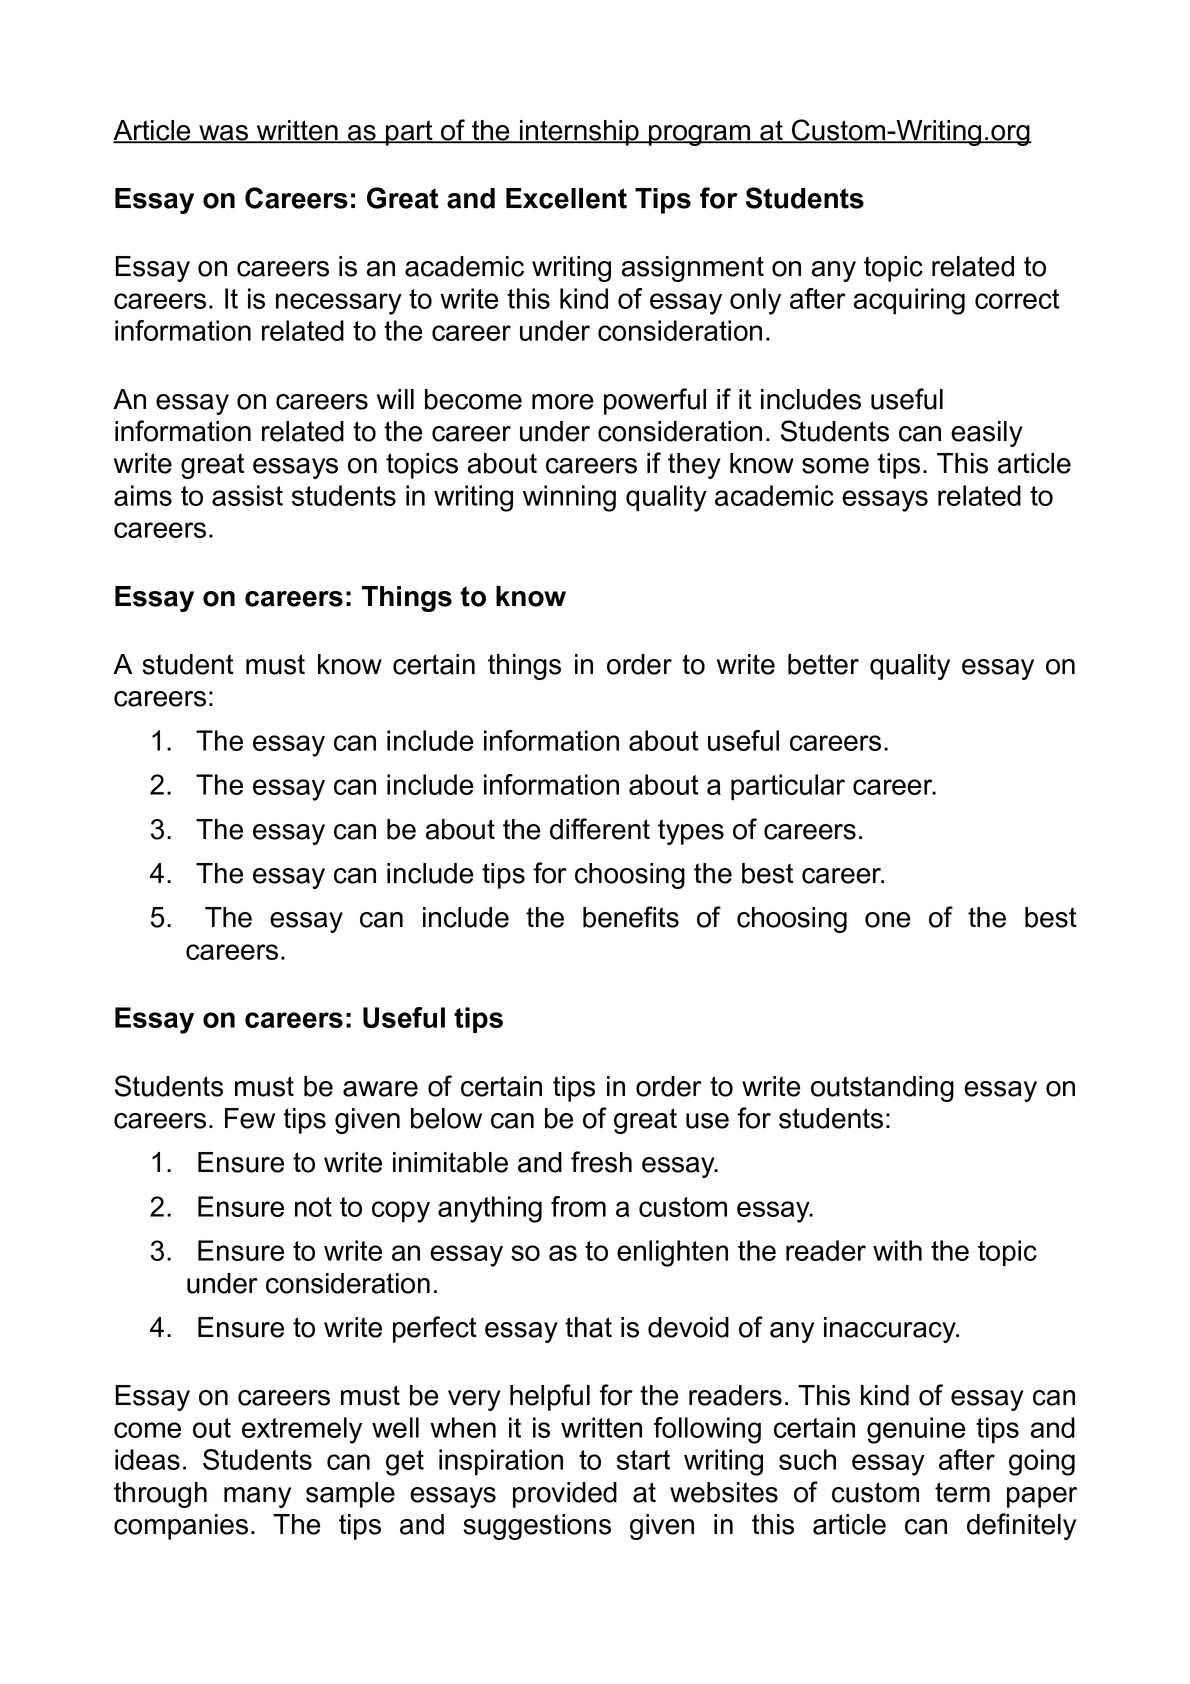 Thesis Of An Essay  Health Essays also Reflection Paper Example Essays Calamo  Essay On Adolescence Approximate Plan For Writing One Graduating From High School Essay